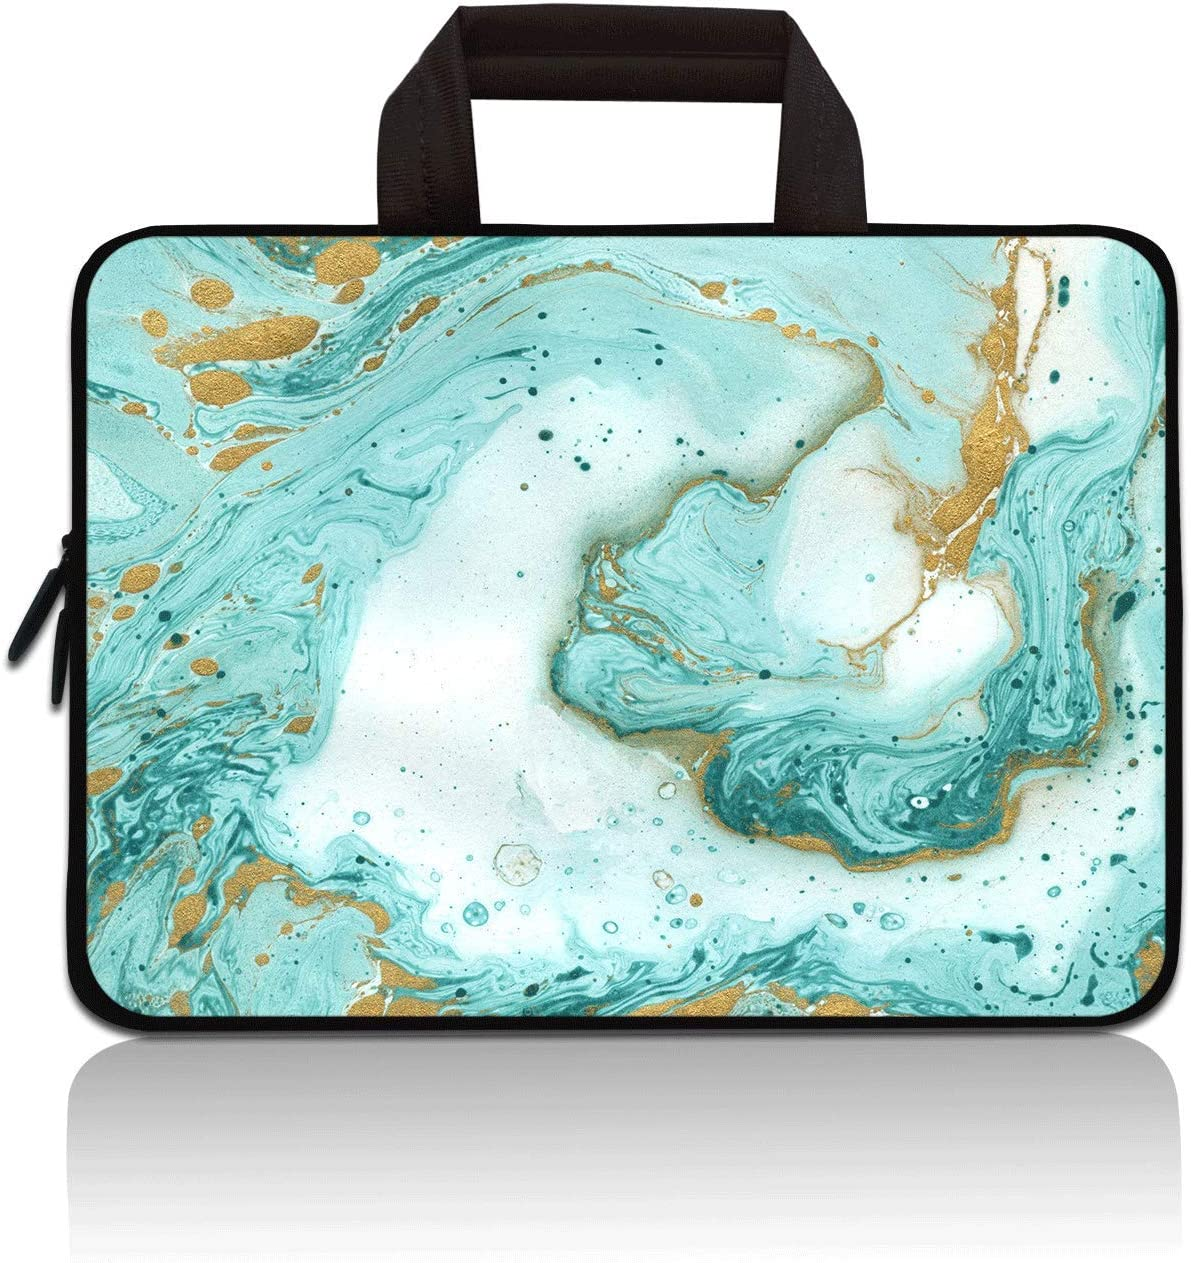 """11"""" 11.6"""" 12"""" 12.1"""" 12.5 Inch Laptop Carrying Bag Case Notebook Ultrabook Bag Tablet Cover Neoprene Sleeve Briefcase Bag Compatible with Samsung Google Acer HP DELL Asus(Vast Ocean)"""